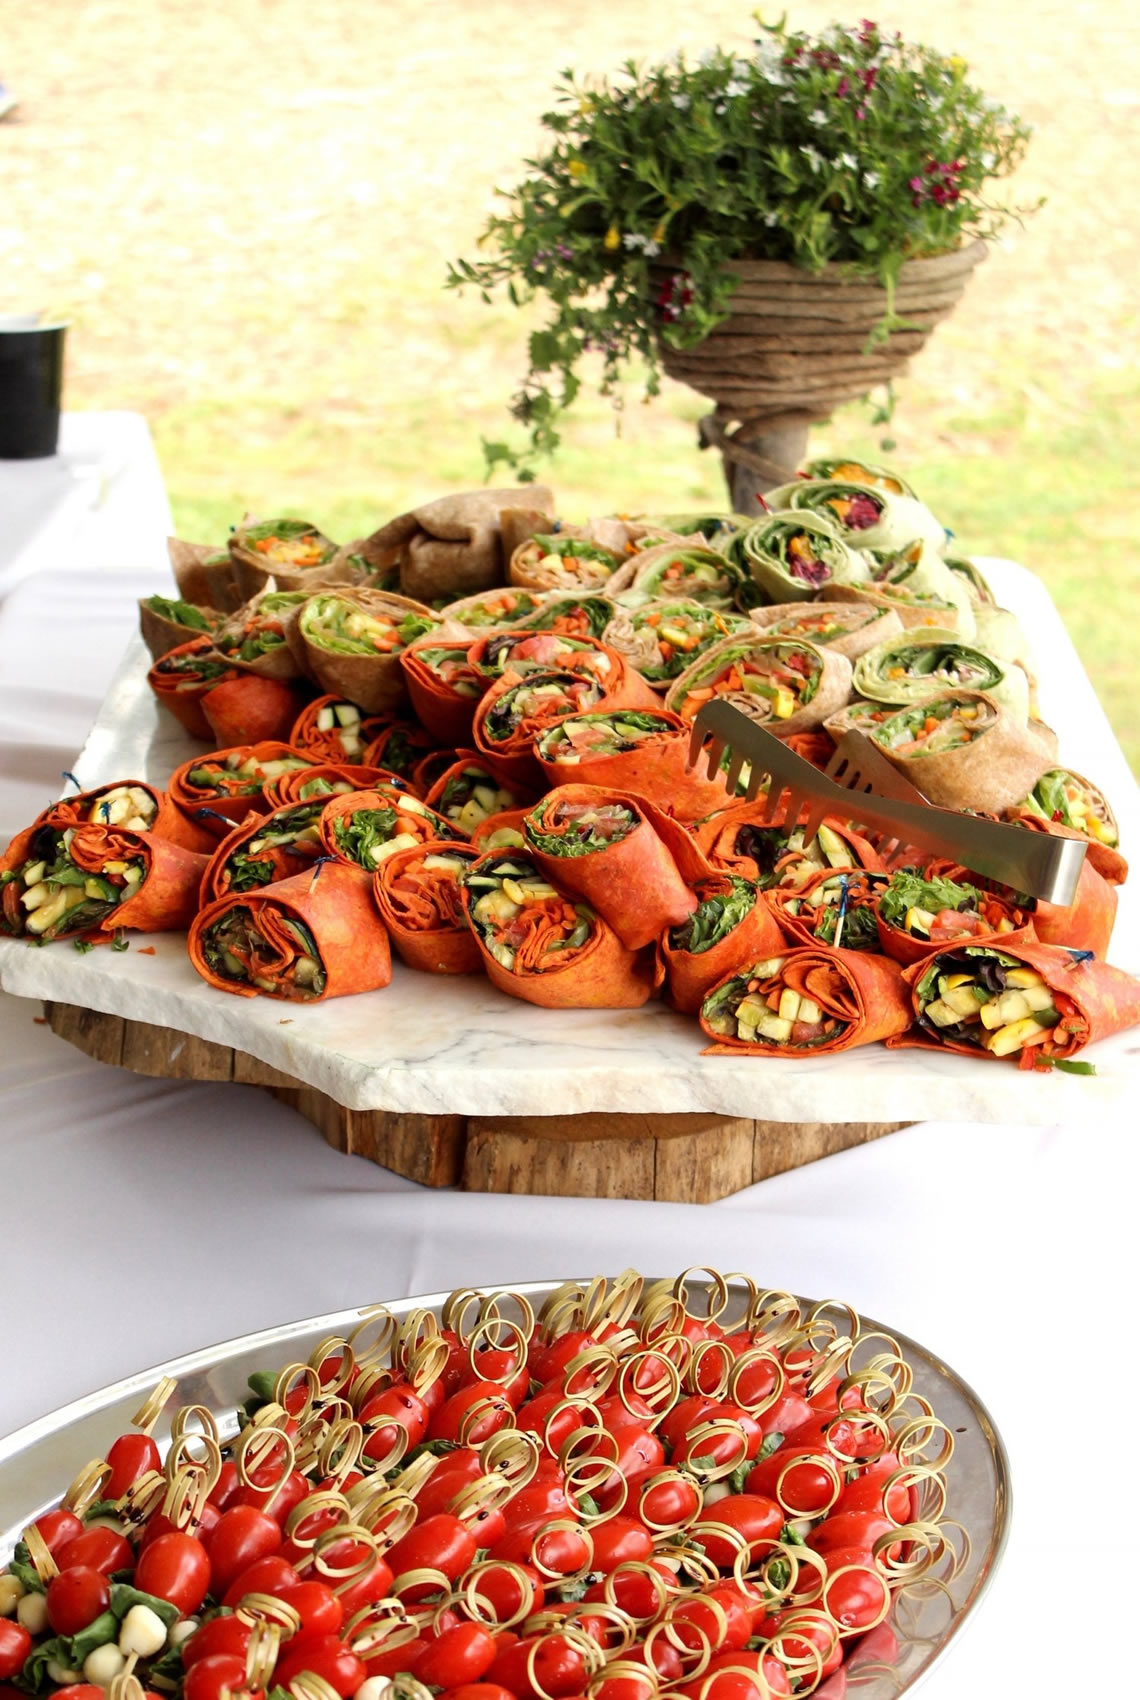 Catering Services Nairobi Kenya, Caterers Nairobi Kenya, Caterer Nairobi Kenya, Catering Nairobi Kenya, Caterers Mombasa, Caterer Mombasa Kenya, Catering Mombasa Kenya, Caterers Kisumu Kenya, Caterer Kisumu Kenya, Catering Kisumu Kenya, Caterers Eldoret Kenya, Caterer Eldoret Kenya, Catering Nairobi Kenya, Benjoes Grill Caterers, Caterers Nairobi Kenya, Caterer Nairobi Kenya, Catering Nairobi Kenya, Catering services in Kenya, Catering company in Nairobi Kenya, Top caterers in Kenya, Catering services Nairobi Kenya, Food catering services, Wedding Caterers in Nairobi, Wedding Caterers in Kenya,Cheap outside catering, affordable catering, delicious outside catering, outside catering in Nairobi, Nairobi Outside Catering Companies, Leading outside catering in Kenya, delicious catering, catering in Kenya, Outside caterers in Nairobi Kenya, Catering Services, Catering Services in Nairobi, One Stop Catering Shop, Catering Out Fit, Nairobi Caterers, Best Nairobi Caterers, Nairobi Catering, Nairobi Best Caterers, Best Outside Caterers Nairobi, Outside Catering in Nairobi, Nairobi Outside Caterers, Nairobi Catering, Corporate Caterers, Corporate Nairobi Caterers, Nairobi Food Caterers, Outside Catering Nairobi, Outside Catering, cater for your event, cater for a number of events, leading caterers in Nairobi, End of year Party, holiday party, corporate picnic, cater your wedding, catering wedding, Nairobi, boutique catering company, fundraising, large regional events, birthday and retirement parties, social events, best caterers in Nairobi, caterers in Nairobi, wedding caterers in Nairobi, outside caterers in Nairobi, wedding caterers in Nairobi Kenya, best caterers in Nairobi, list of caterers in Nairobi, best outside caterers in Nairobi, catering Nairobi Kenya, outside caterers Nairobi, wedding caterers, Nairobi, spring caterers Nairobi, royal caterers Nairobi, harvesters caterers Nairobi, home park caterers Nairobi, san valencia caterers Nairobi,caterers Nairobi,catering N